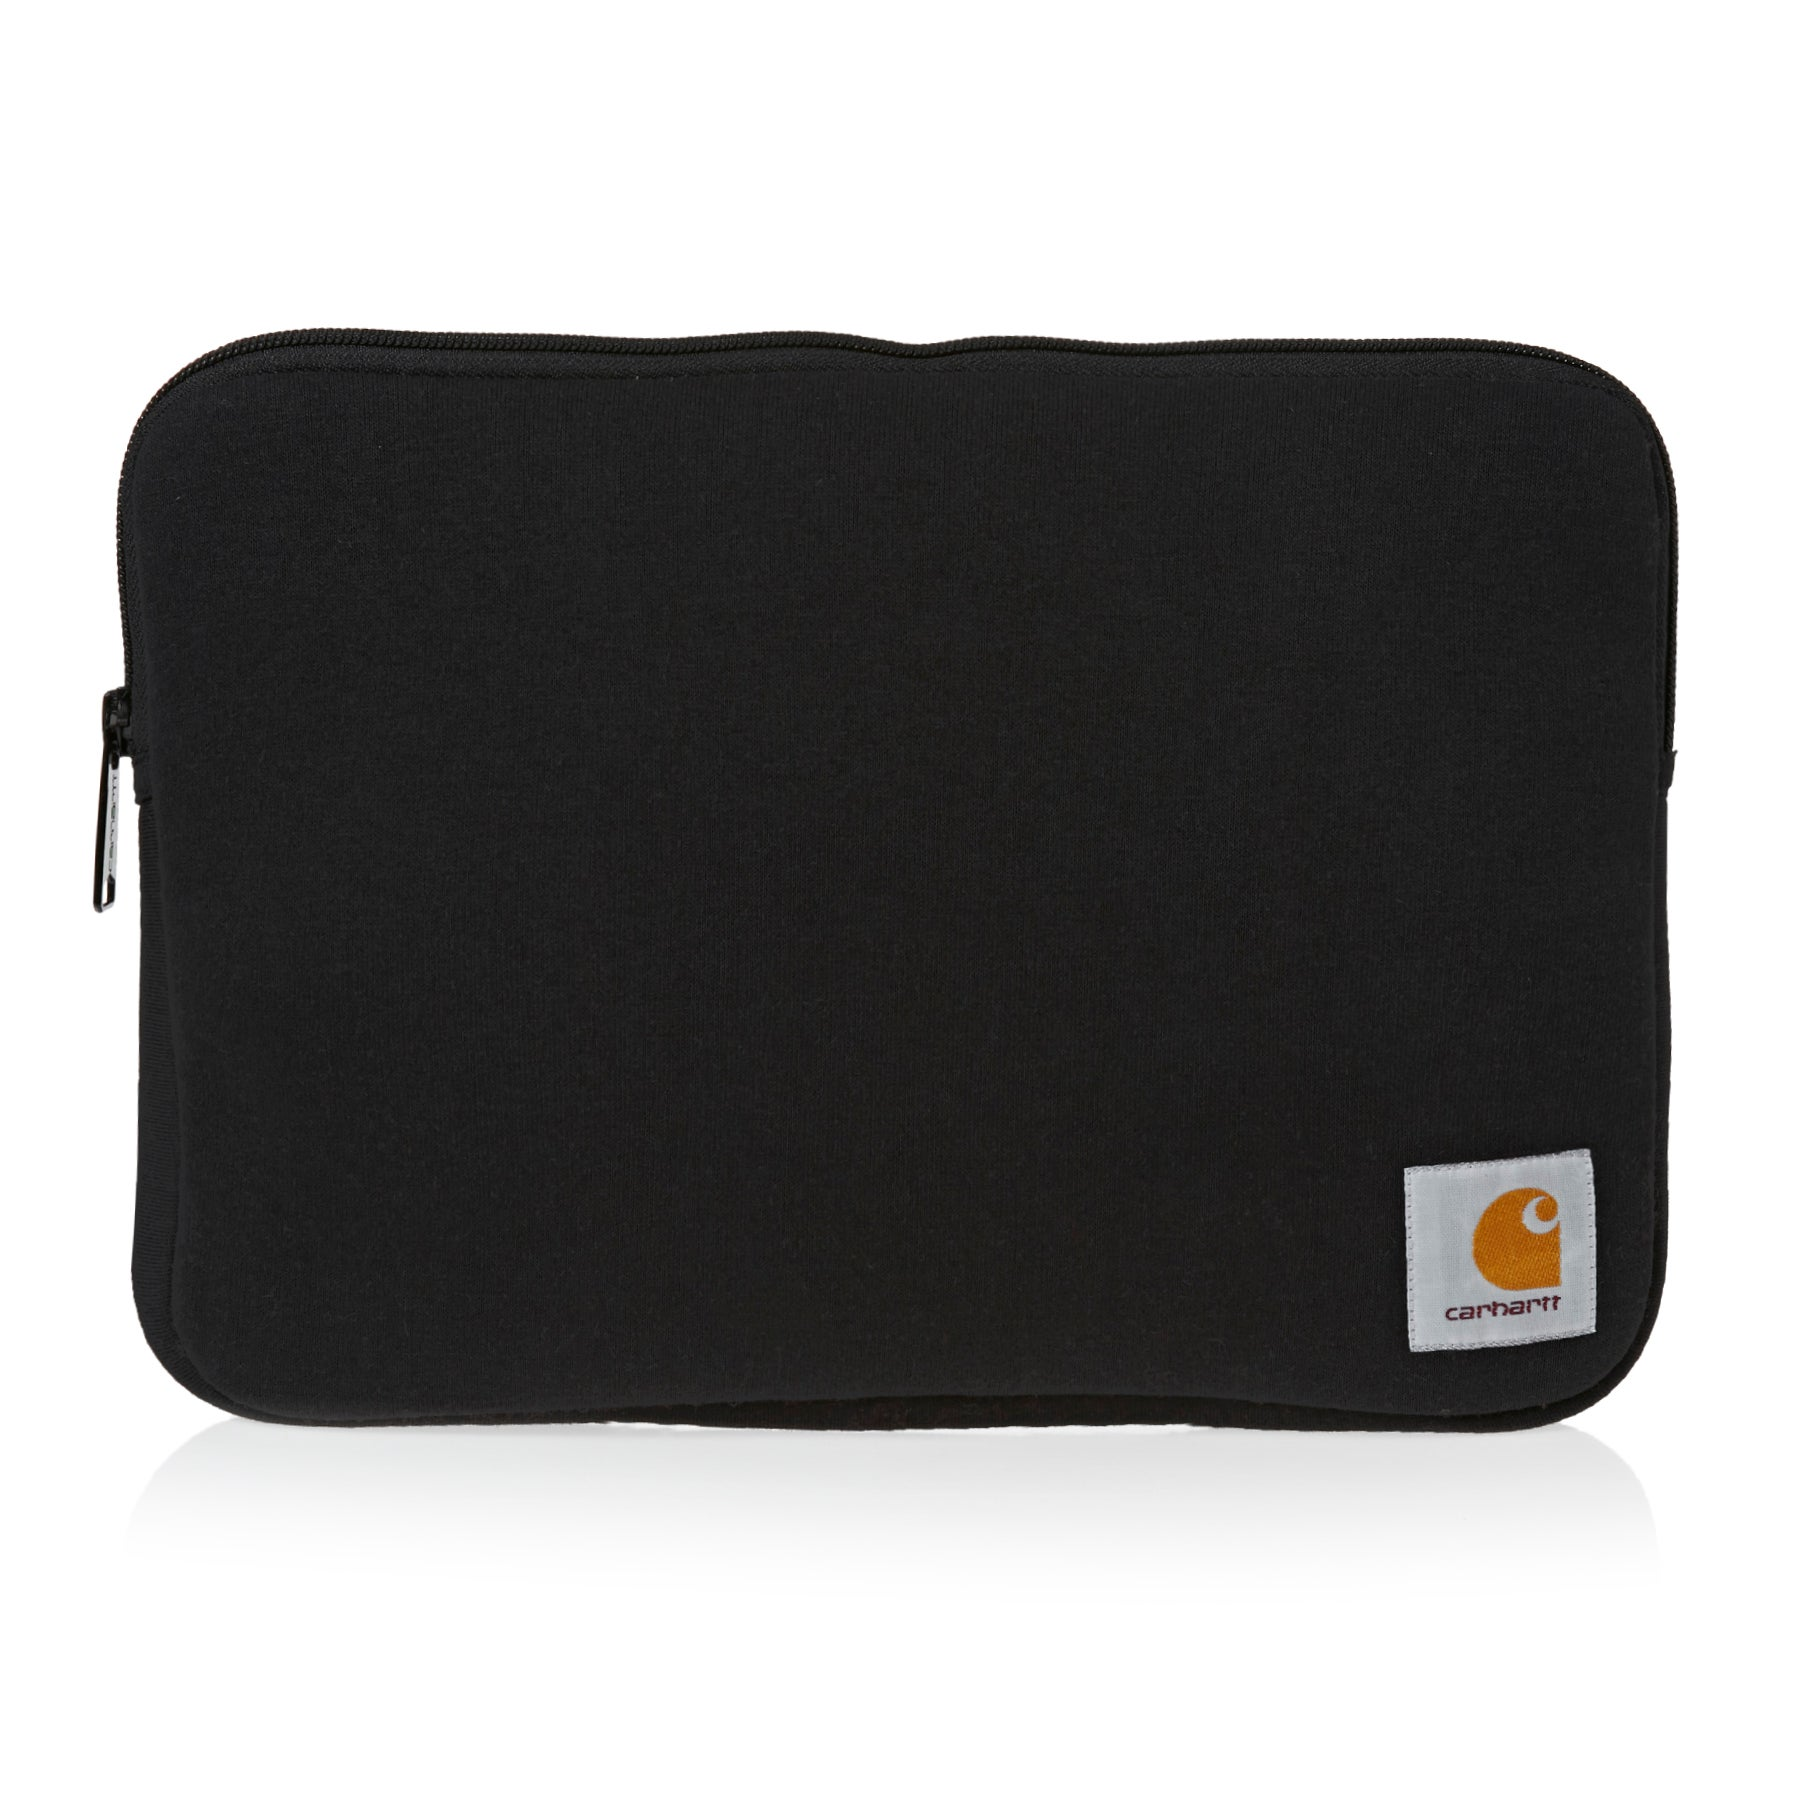 Carhartt Carlux Computer Sleeve 13inch Laptop Case